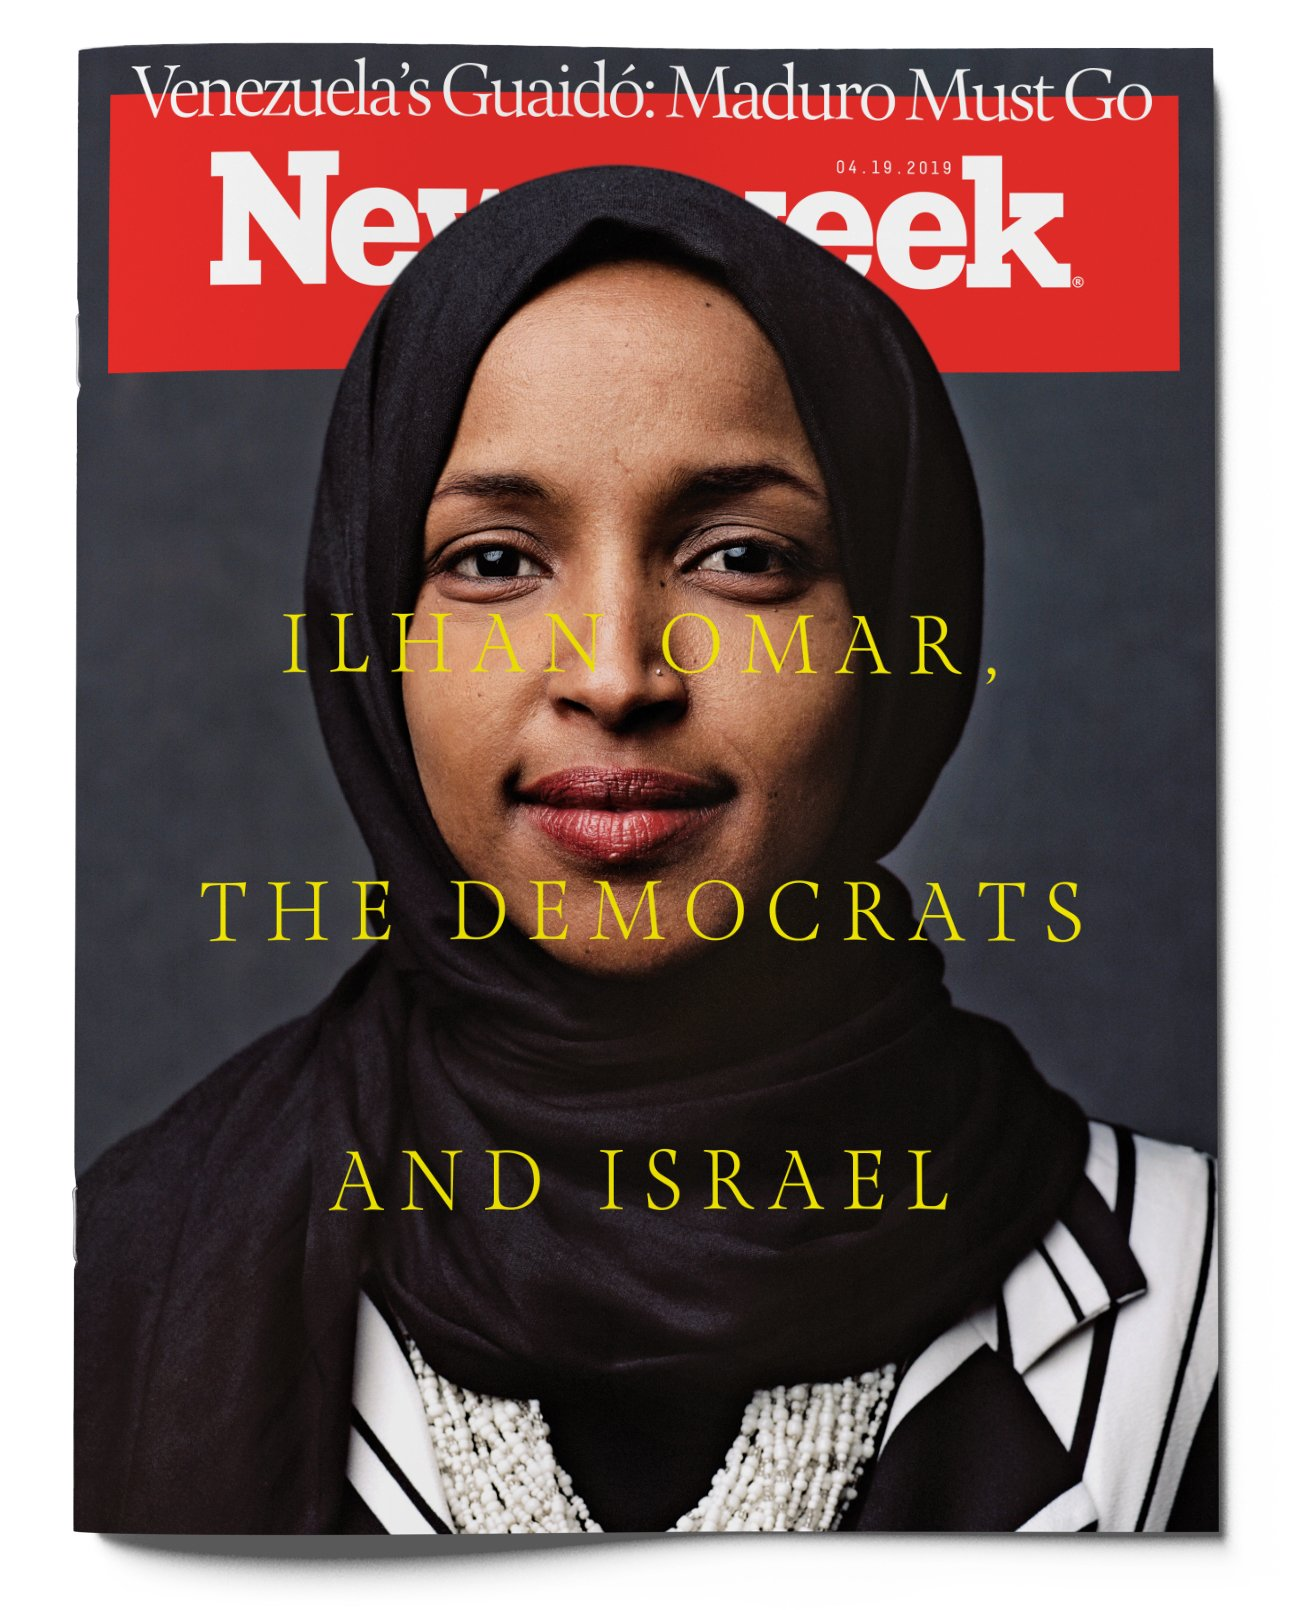 Westlake Legal Group omar-newsweek Newsweek's Ilhan Omar cover, article, slammed for 'normalizing' hate, anti-Semitism Lukas Mikelionis fox-news/politics/house-of-representatives/democrats fox-news/politics fox-news/person/ilhan-omar fox-news/entertainment/media fox news fnc/entertainment fnc article 07e946d9-b04c-5522-9408-a07470d2cc88